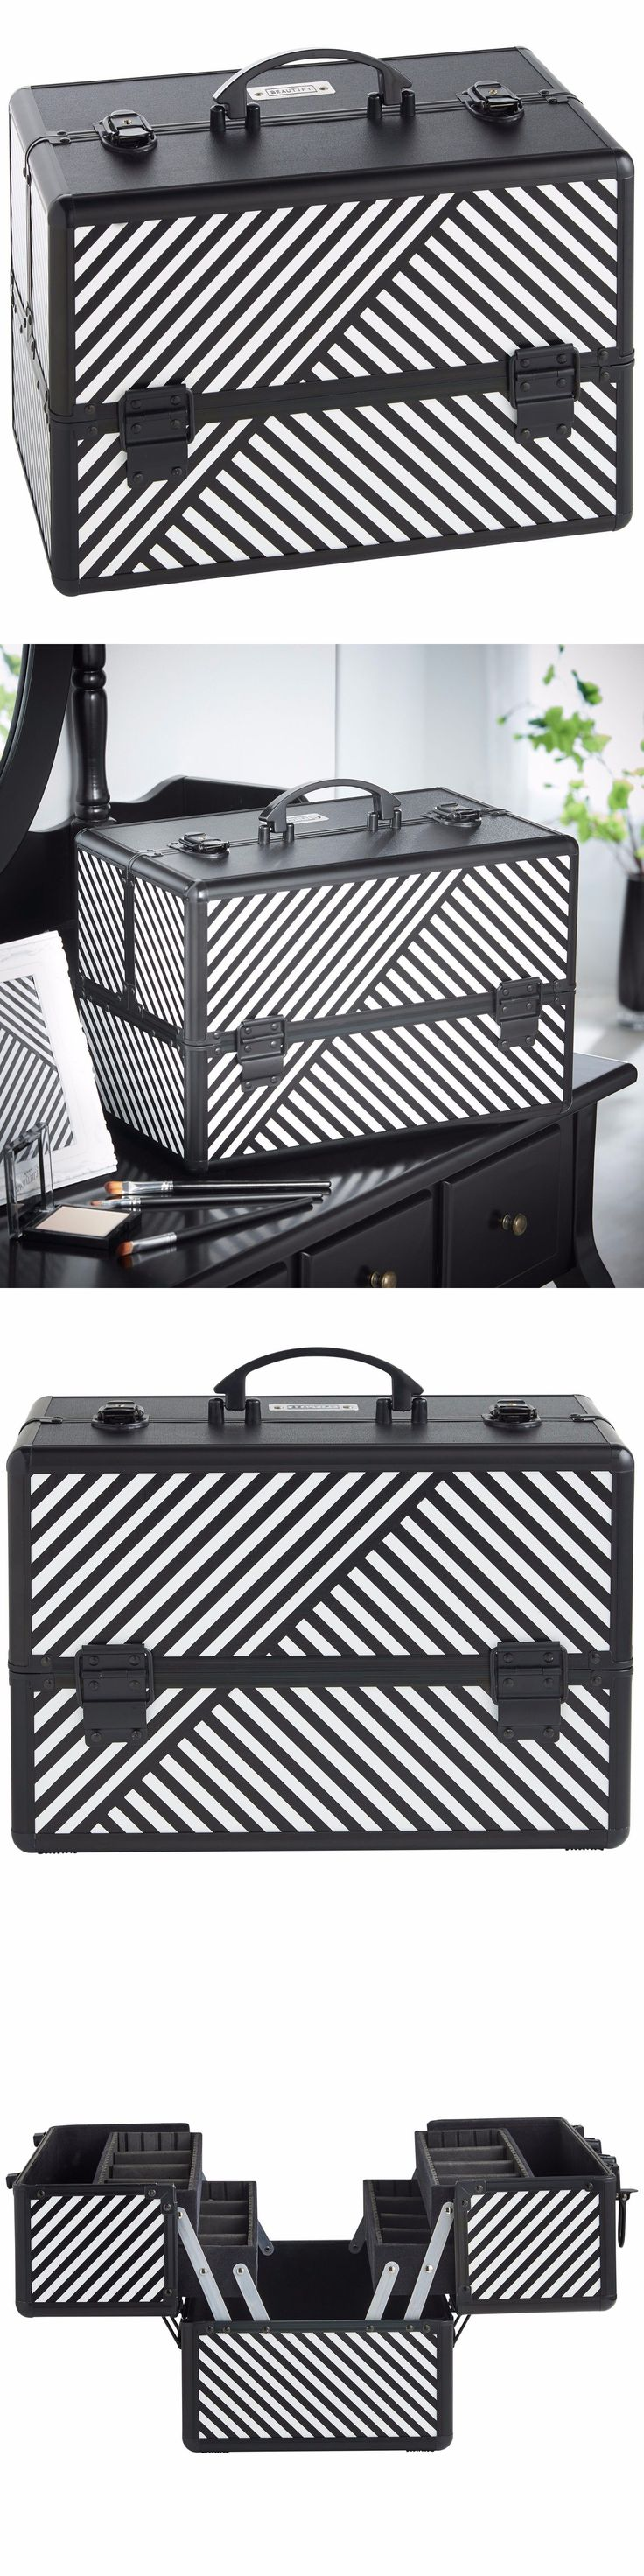 Makeup Bags and Cases: Beautify Large Black 14 Train Case Cosmetic Makeup Organizer Storage Box -> BUY IT NOW ONLY: $39.99 on eBay!